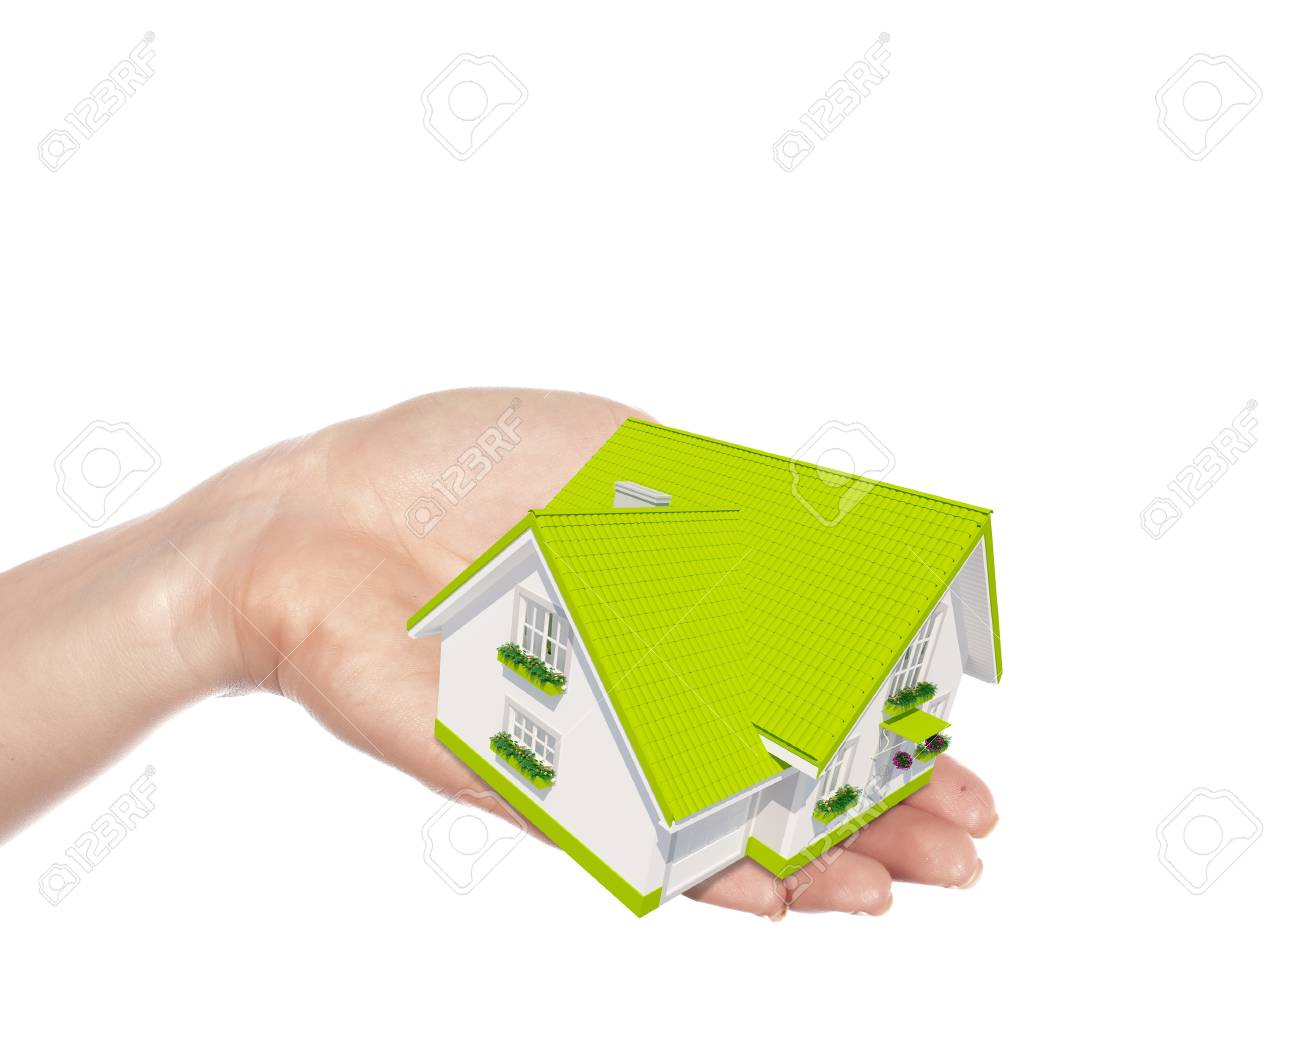 The house with colour roof in human hands Stock Photo - 15204587